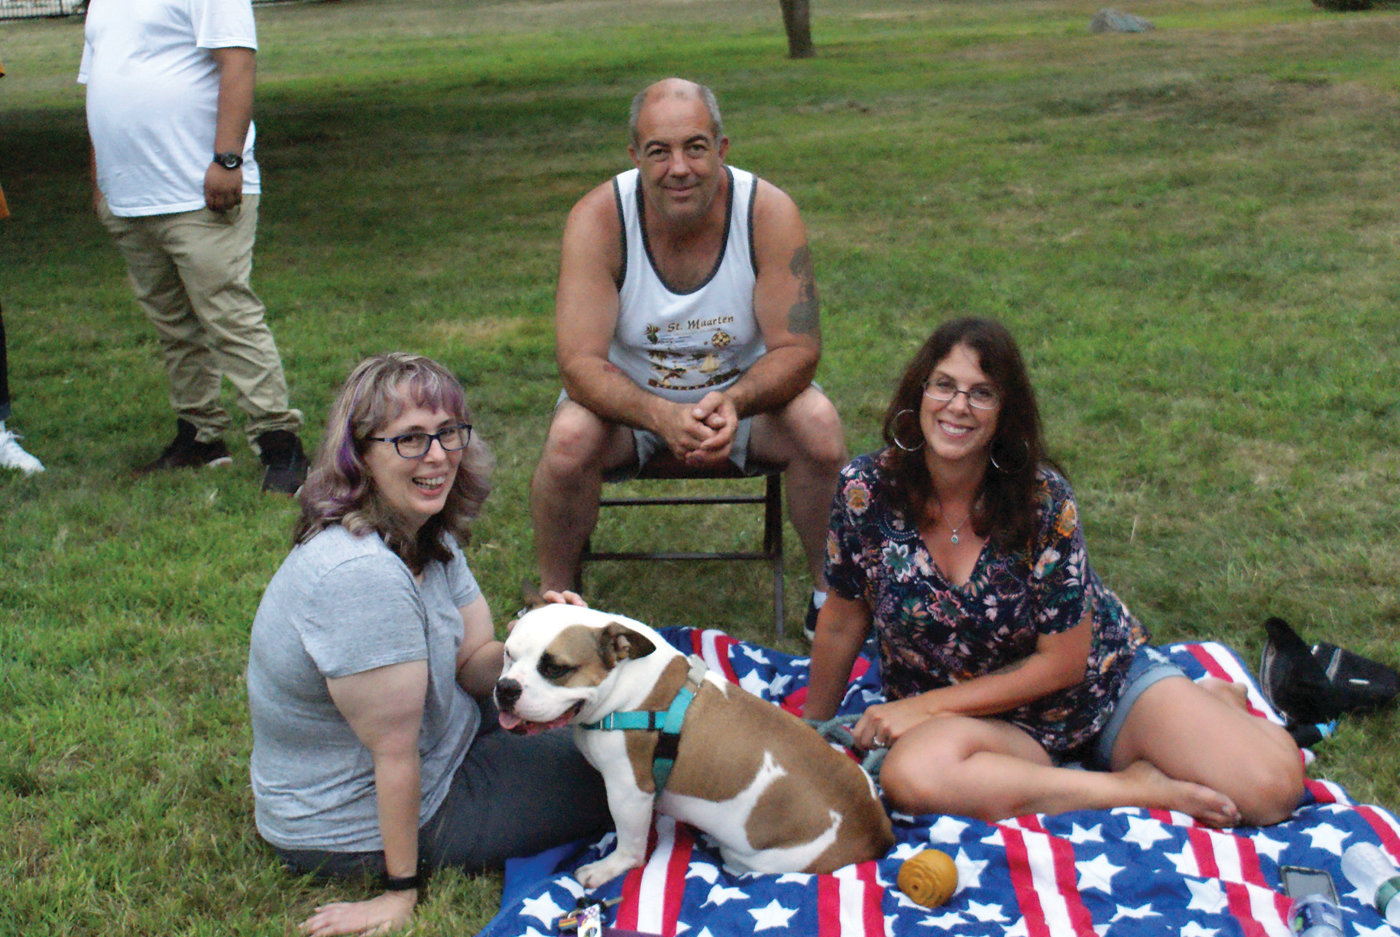 FRIENDS AND FAMILY: Enjoying some time with Mike, a roughly 4-year-old rescue and therapy dog who is an English bulldog/pitbull mix, are Tracy Murphy and his owners, Gary and Michelle Rose.